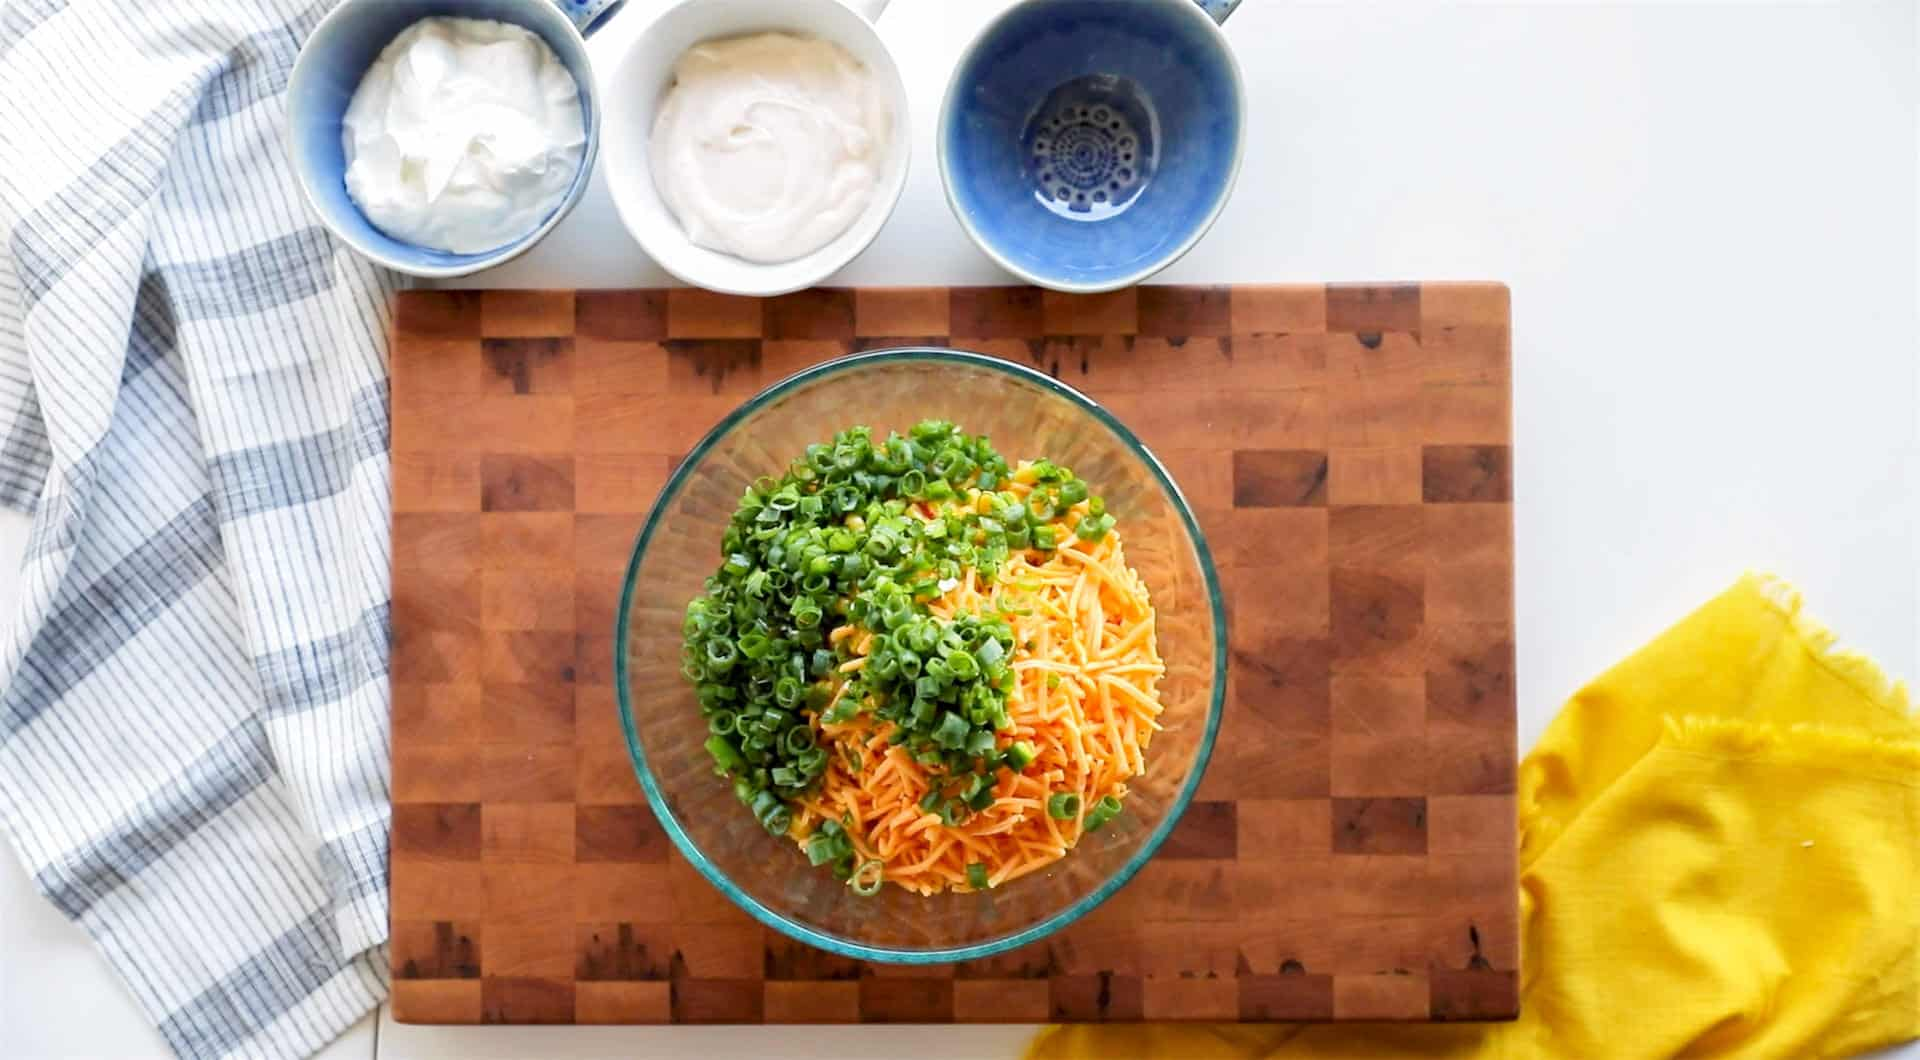 creamy fiesta corn dip ingredients: sour cream, mayonnaise, cheddar, green onion and jalapeño with fiesta corn. Mixing bowl on cutting board with cheddar and fiesta corn jalapeno, green onion